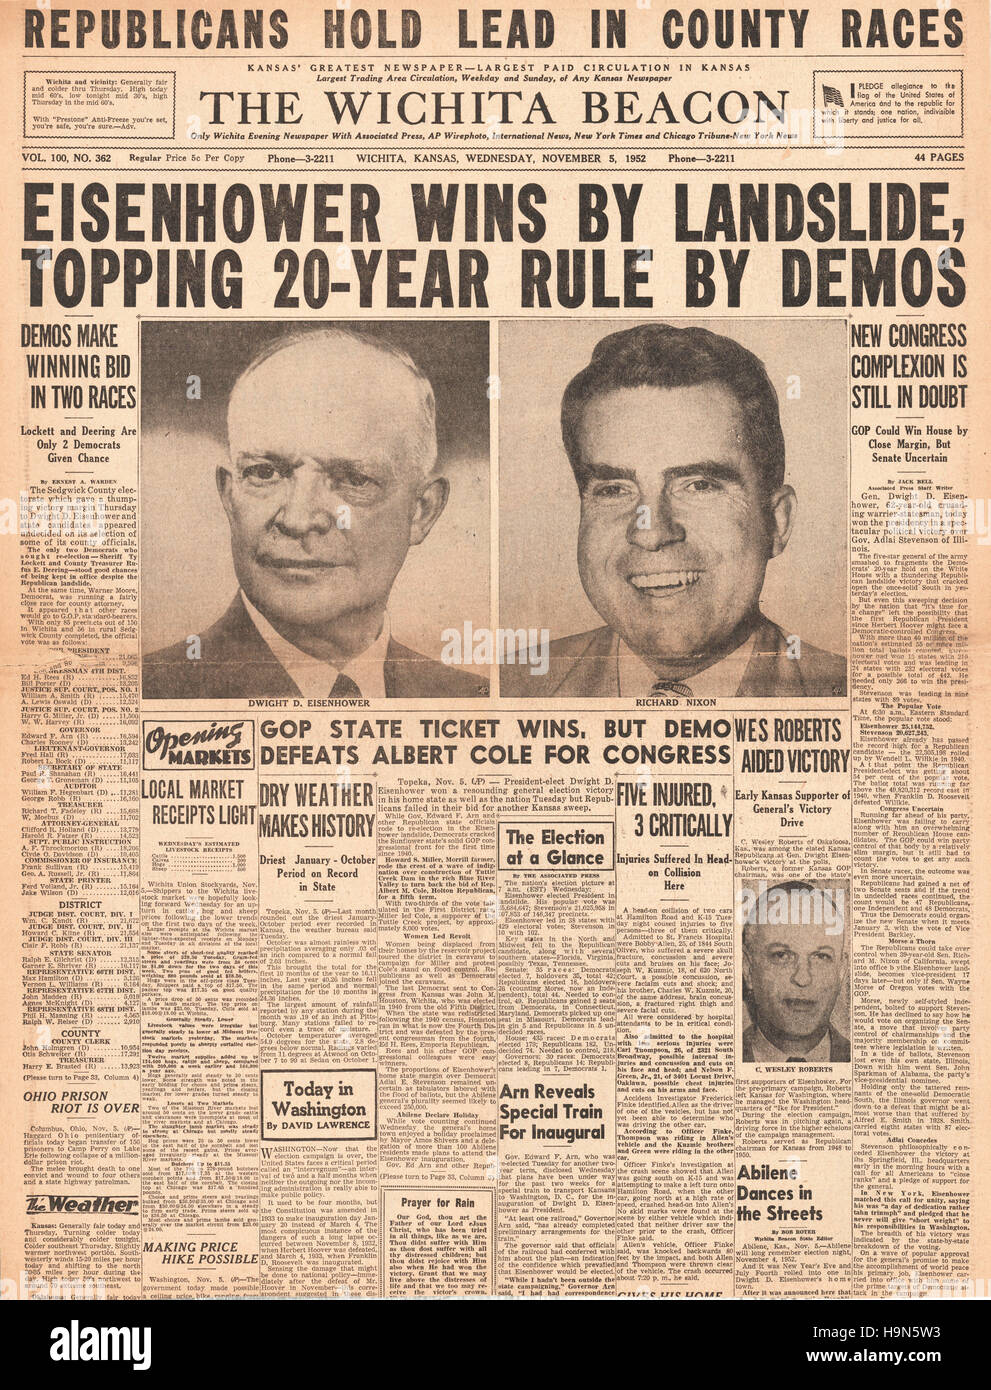 1952 Wichita Beacon (USA) front page Dwight D Eisenhower elected 34th President of the United States - Stock Image